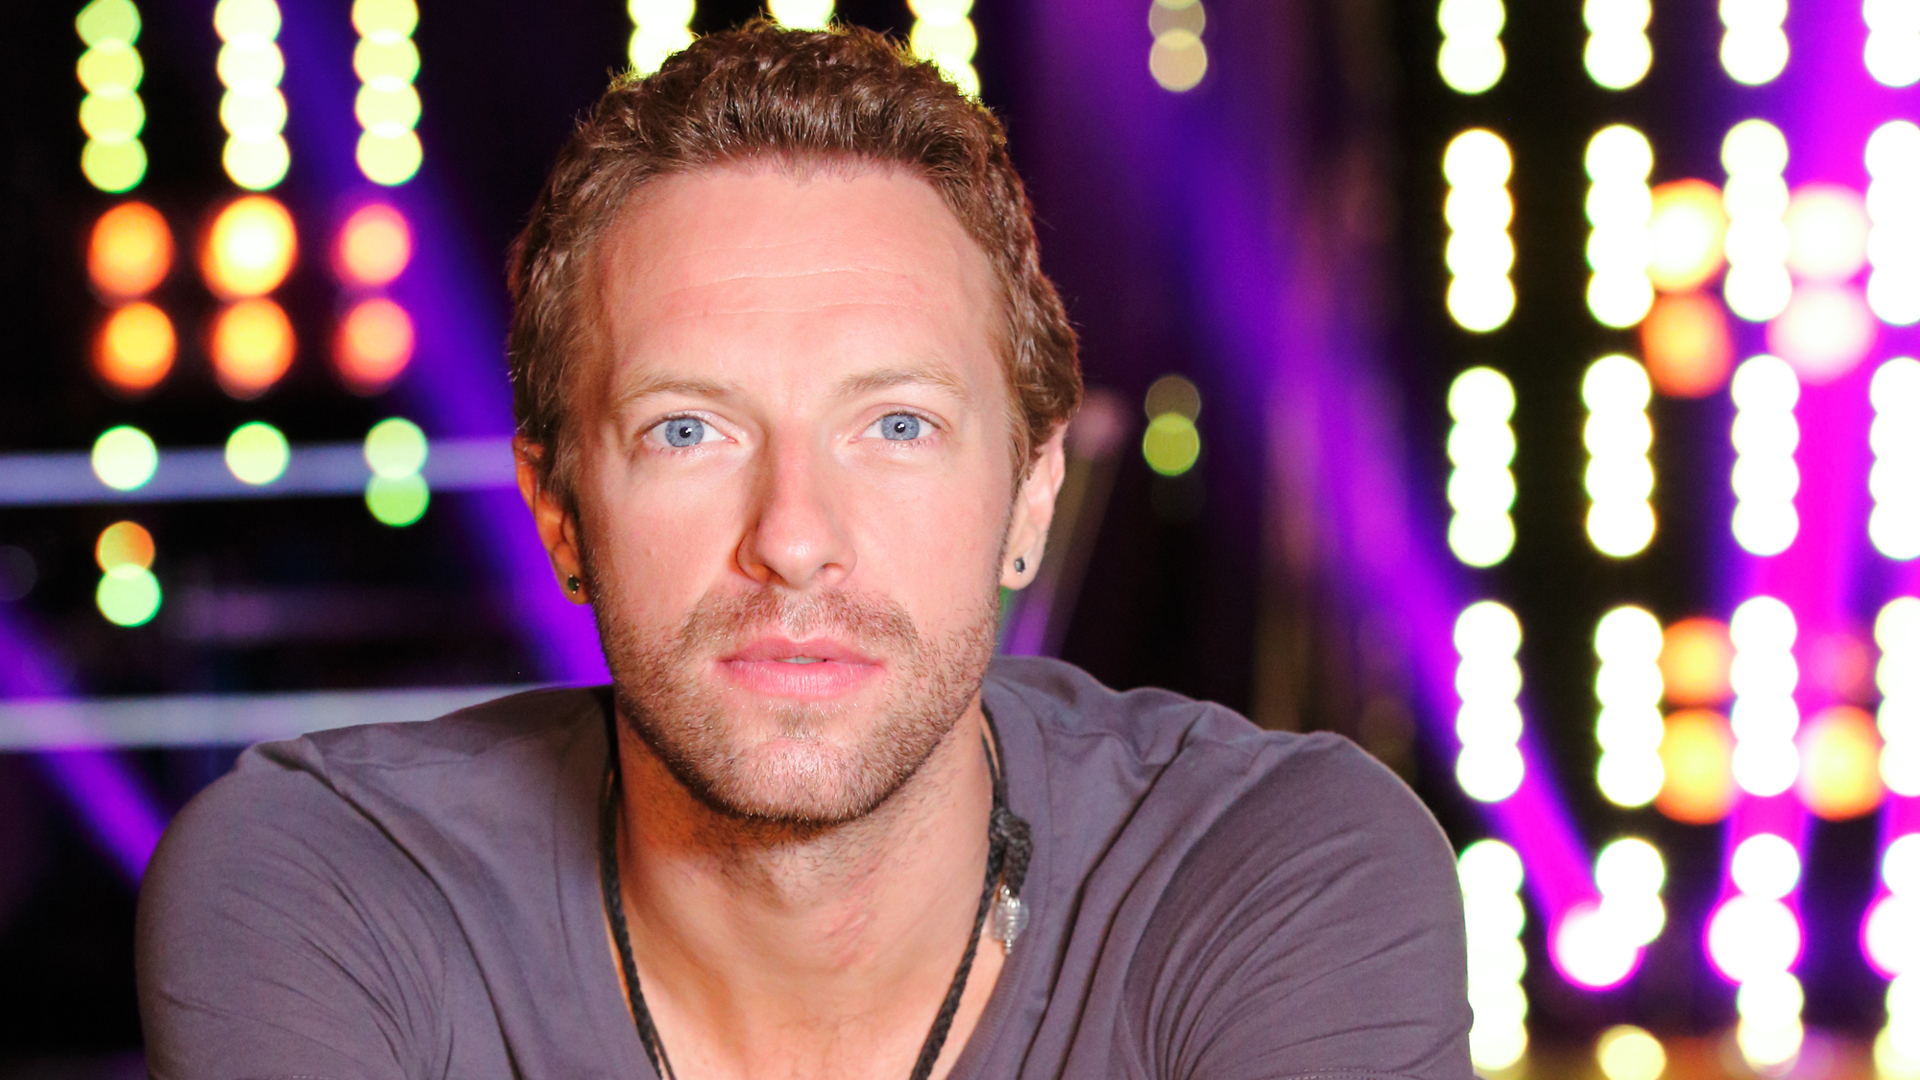 Coldplay's Chris Martin joins 'The Voice' in new twist ...